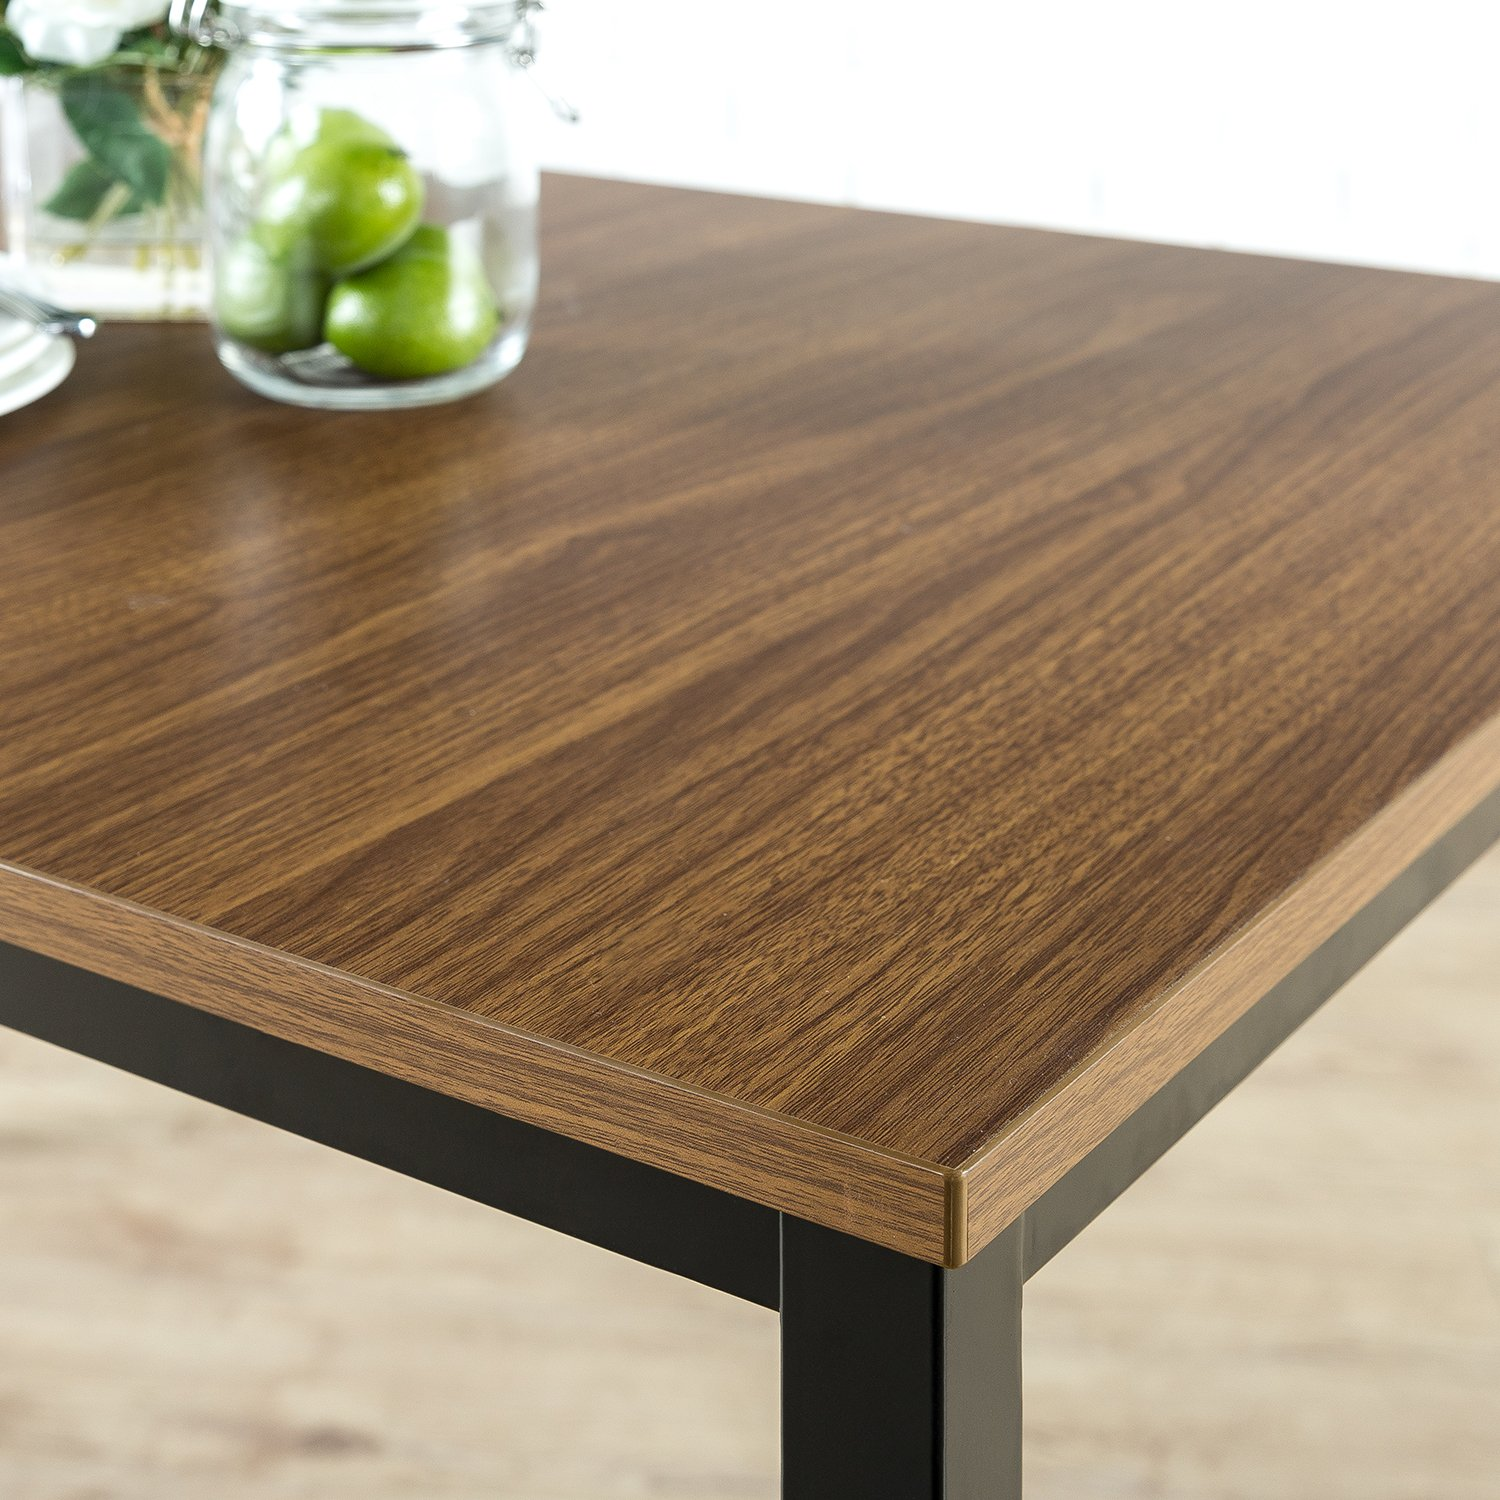 Zinus Modern Studio Collection Soho Dining Table/Office Desk/Computer Desk/Table Only, Brown by Zinus (Image #6)